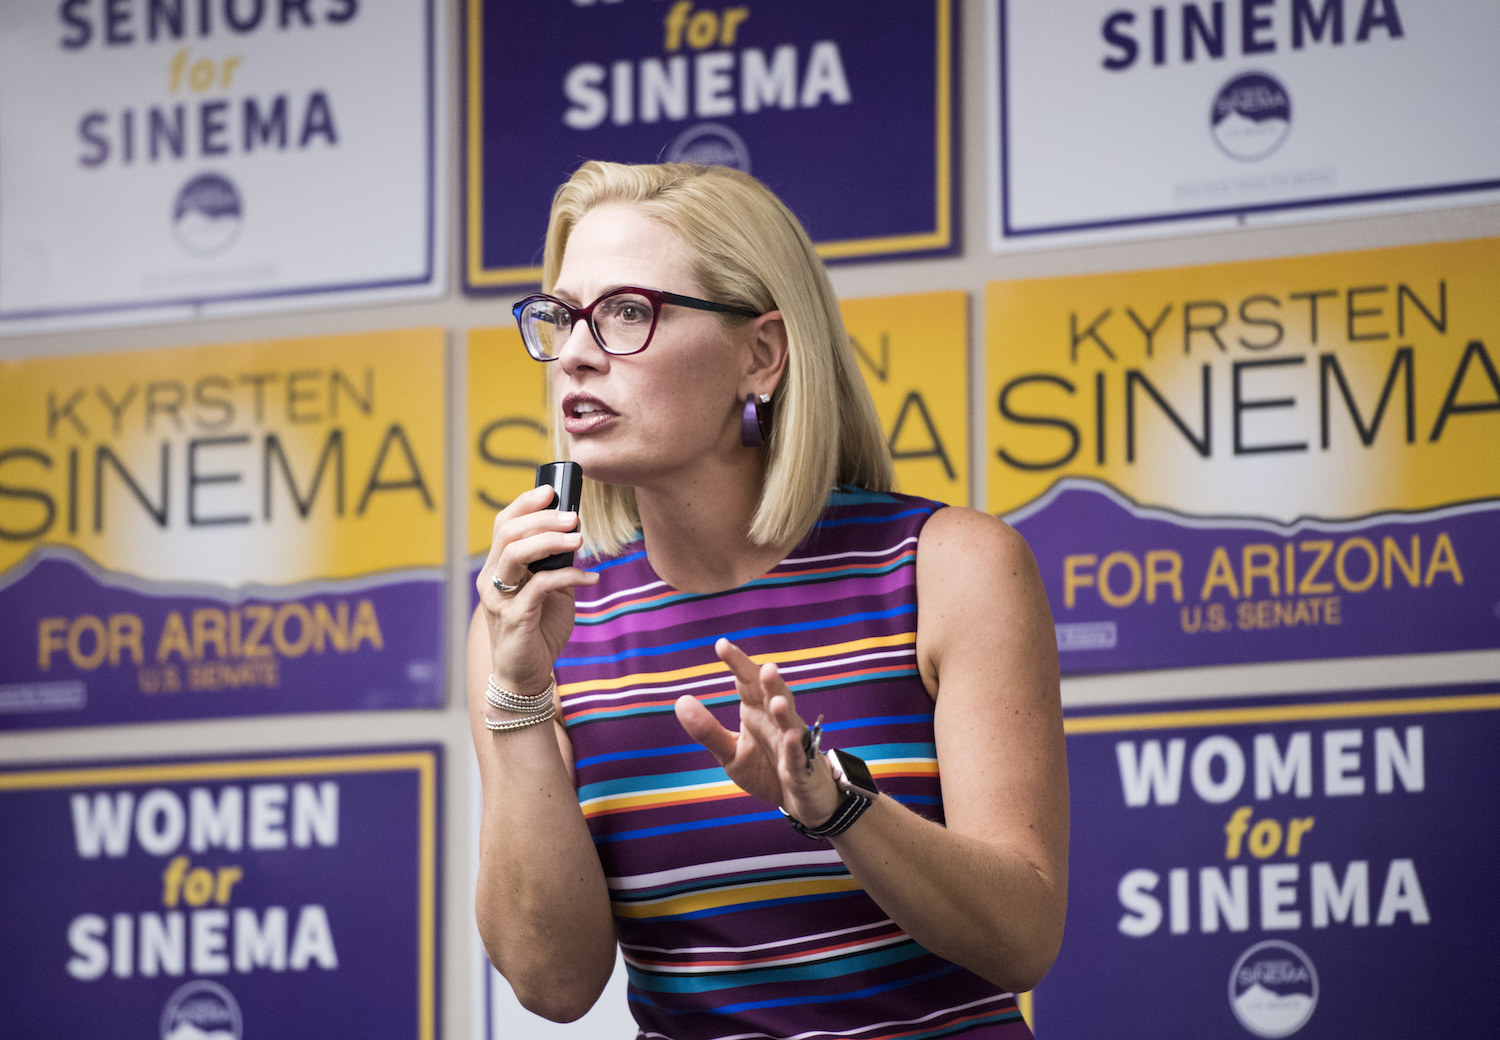 Democrat Krysten Sinema Has Won Arizona's Senate Race